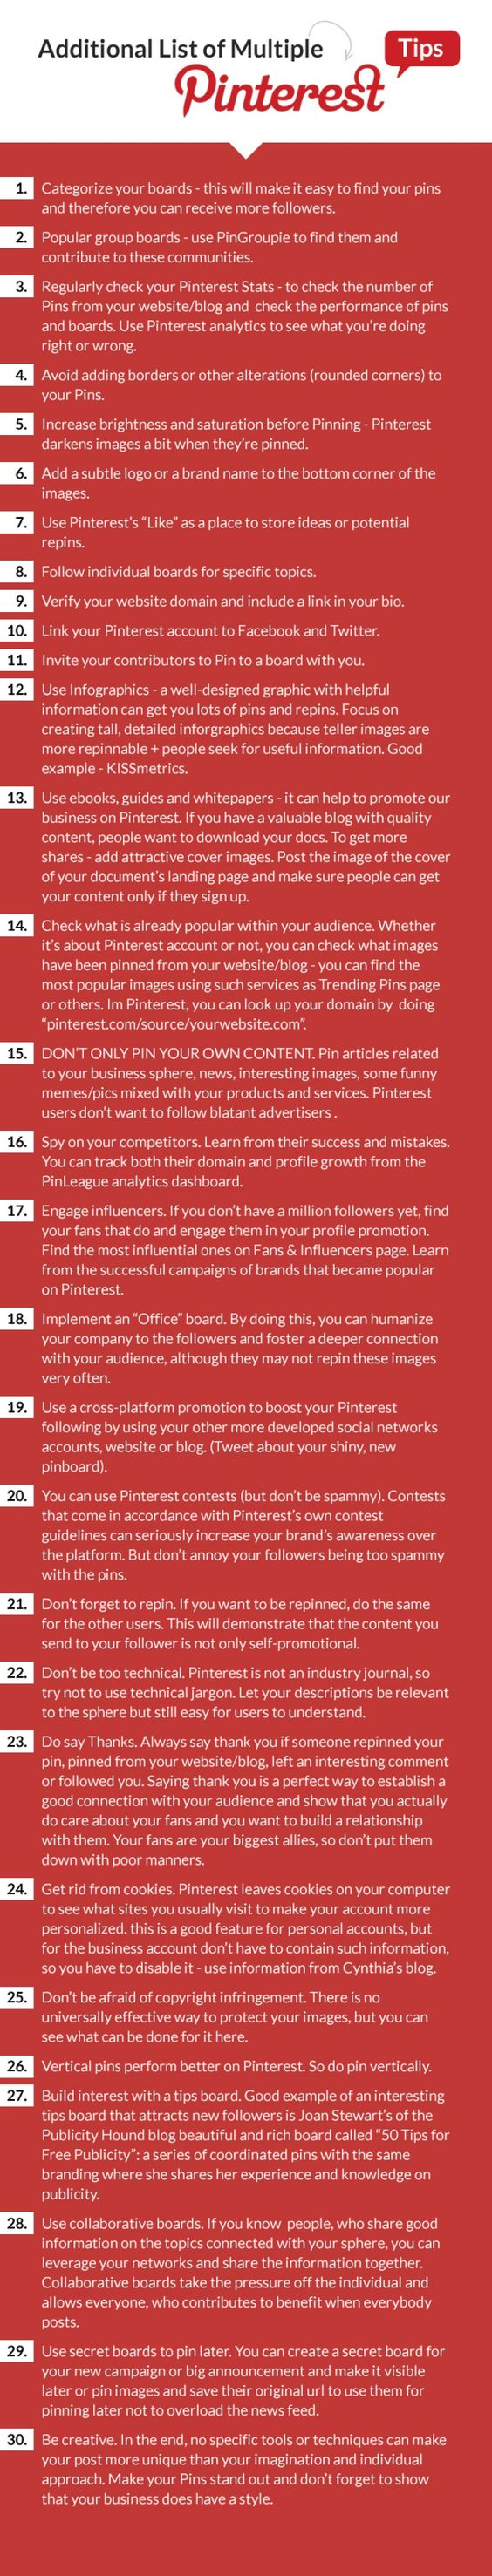 Cool! Social Media Marketing Infographic Aug 2016